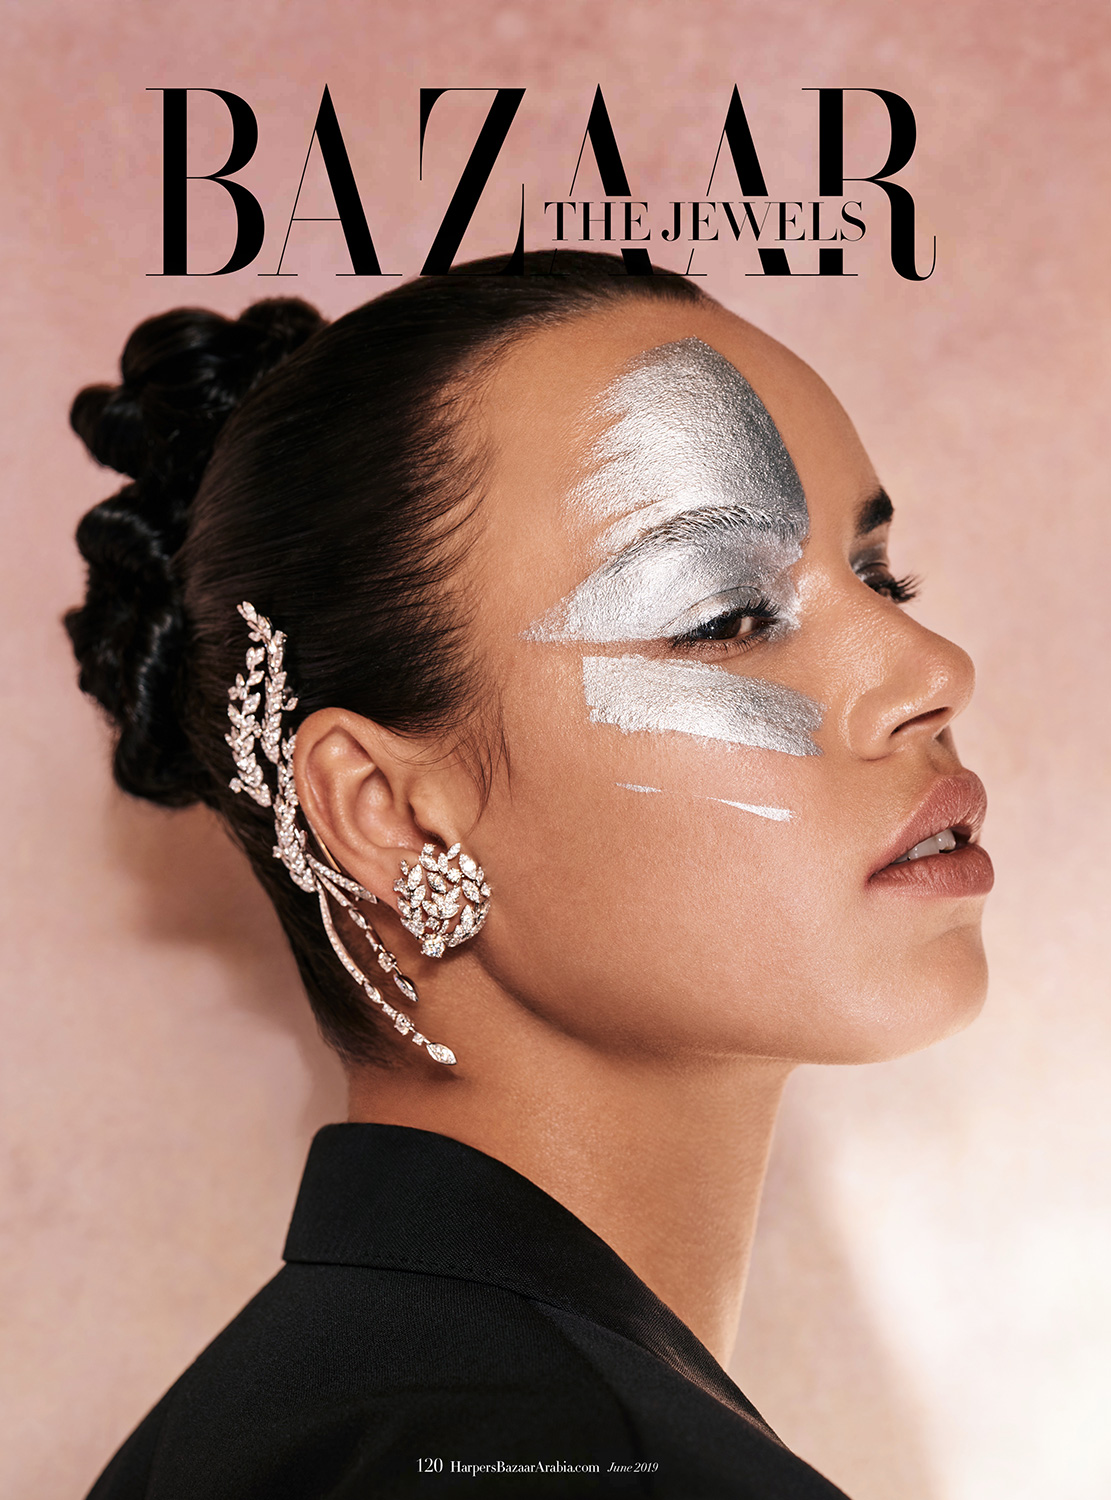 Bazaar_Jewels-1